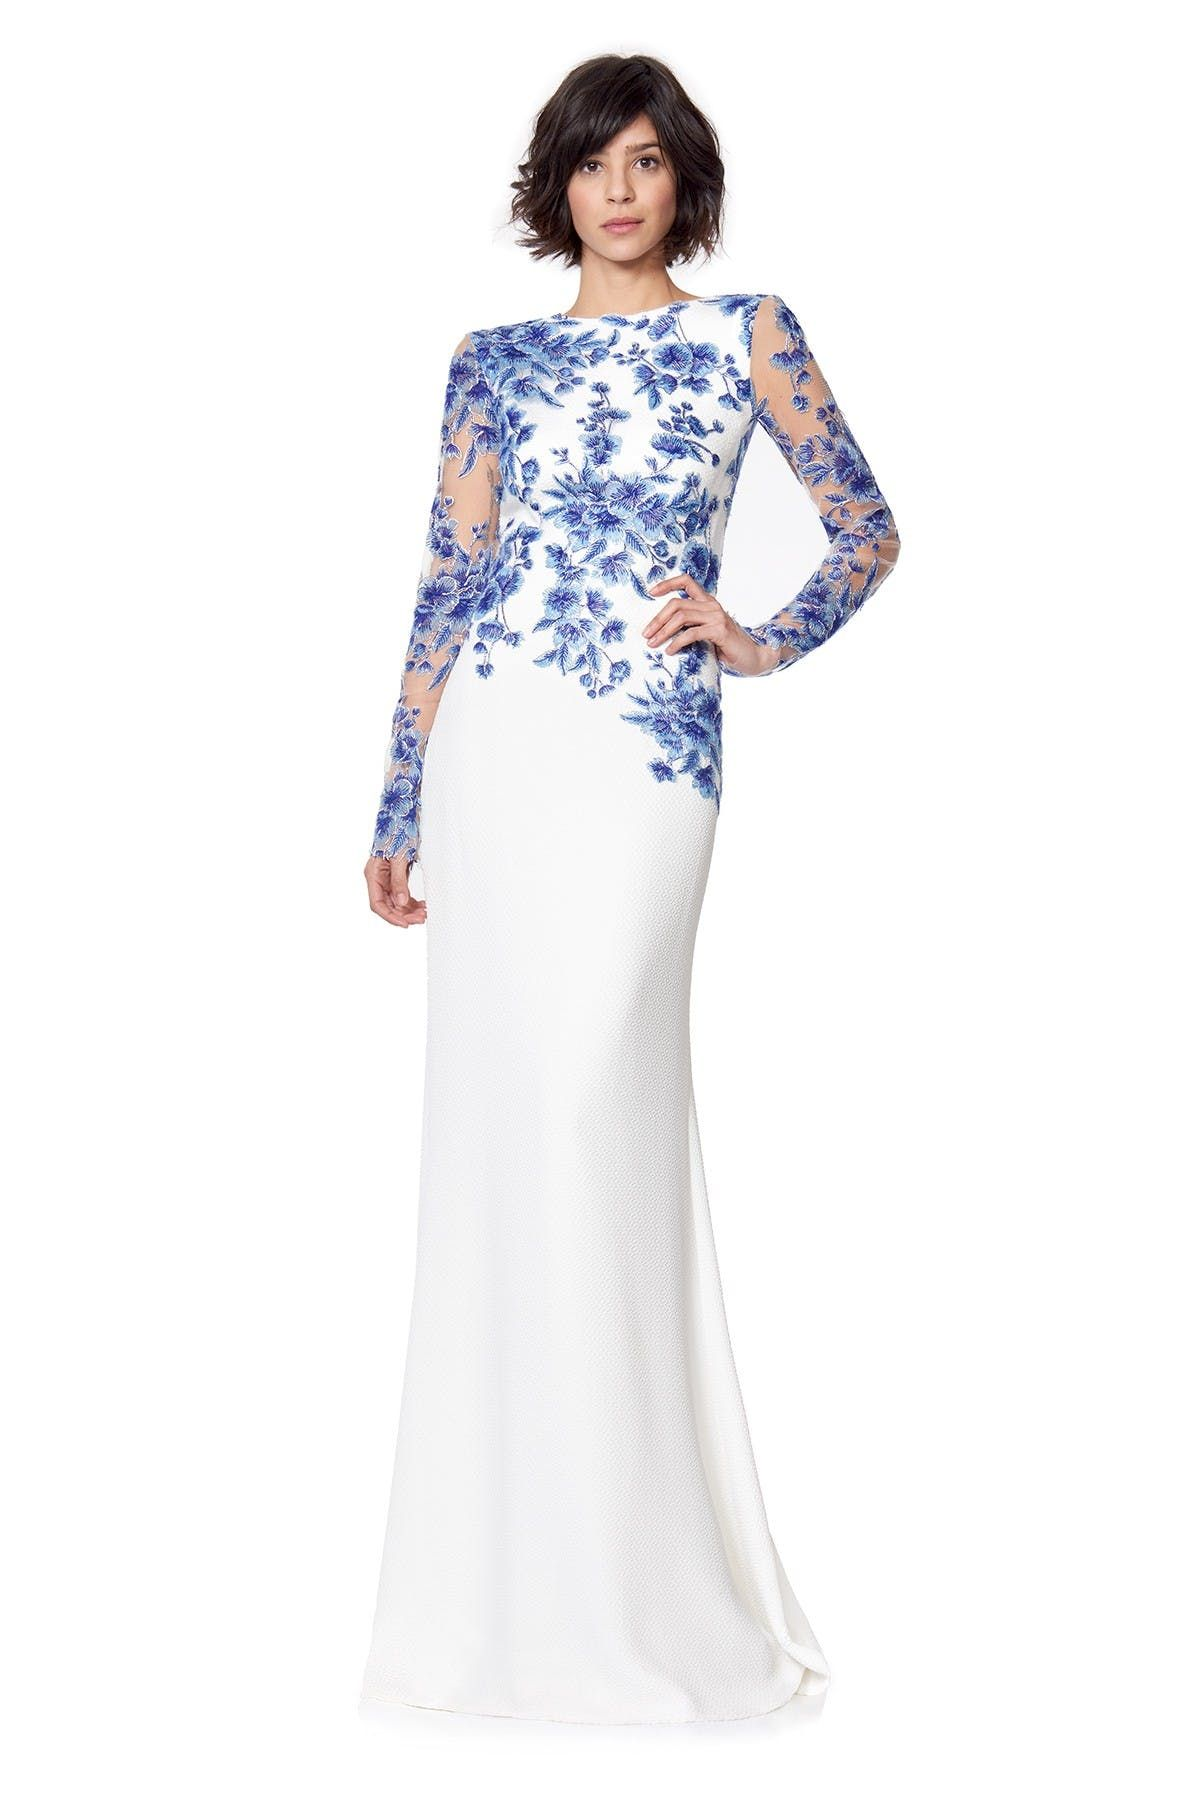 50 colorful wedding dresses nontraditional brides will